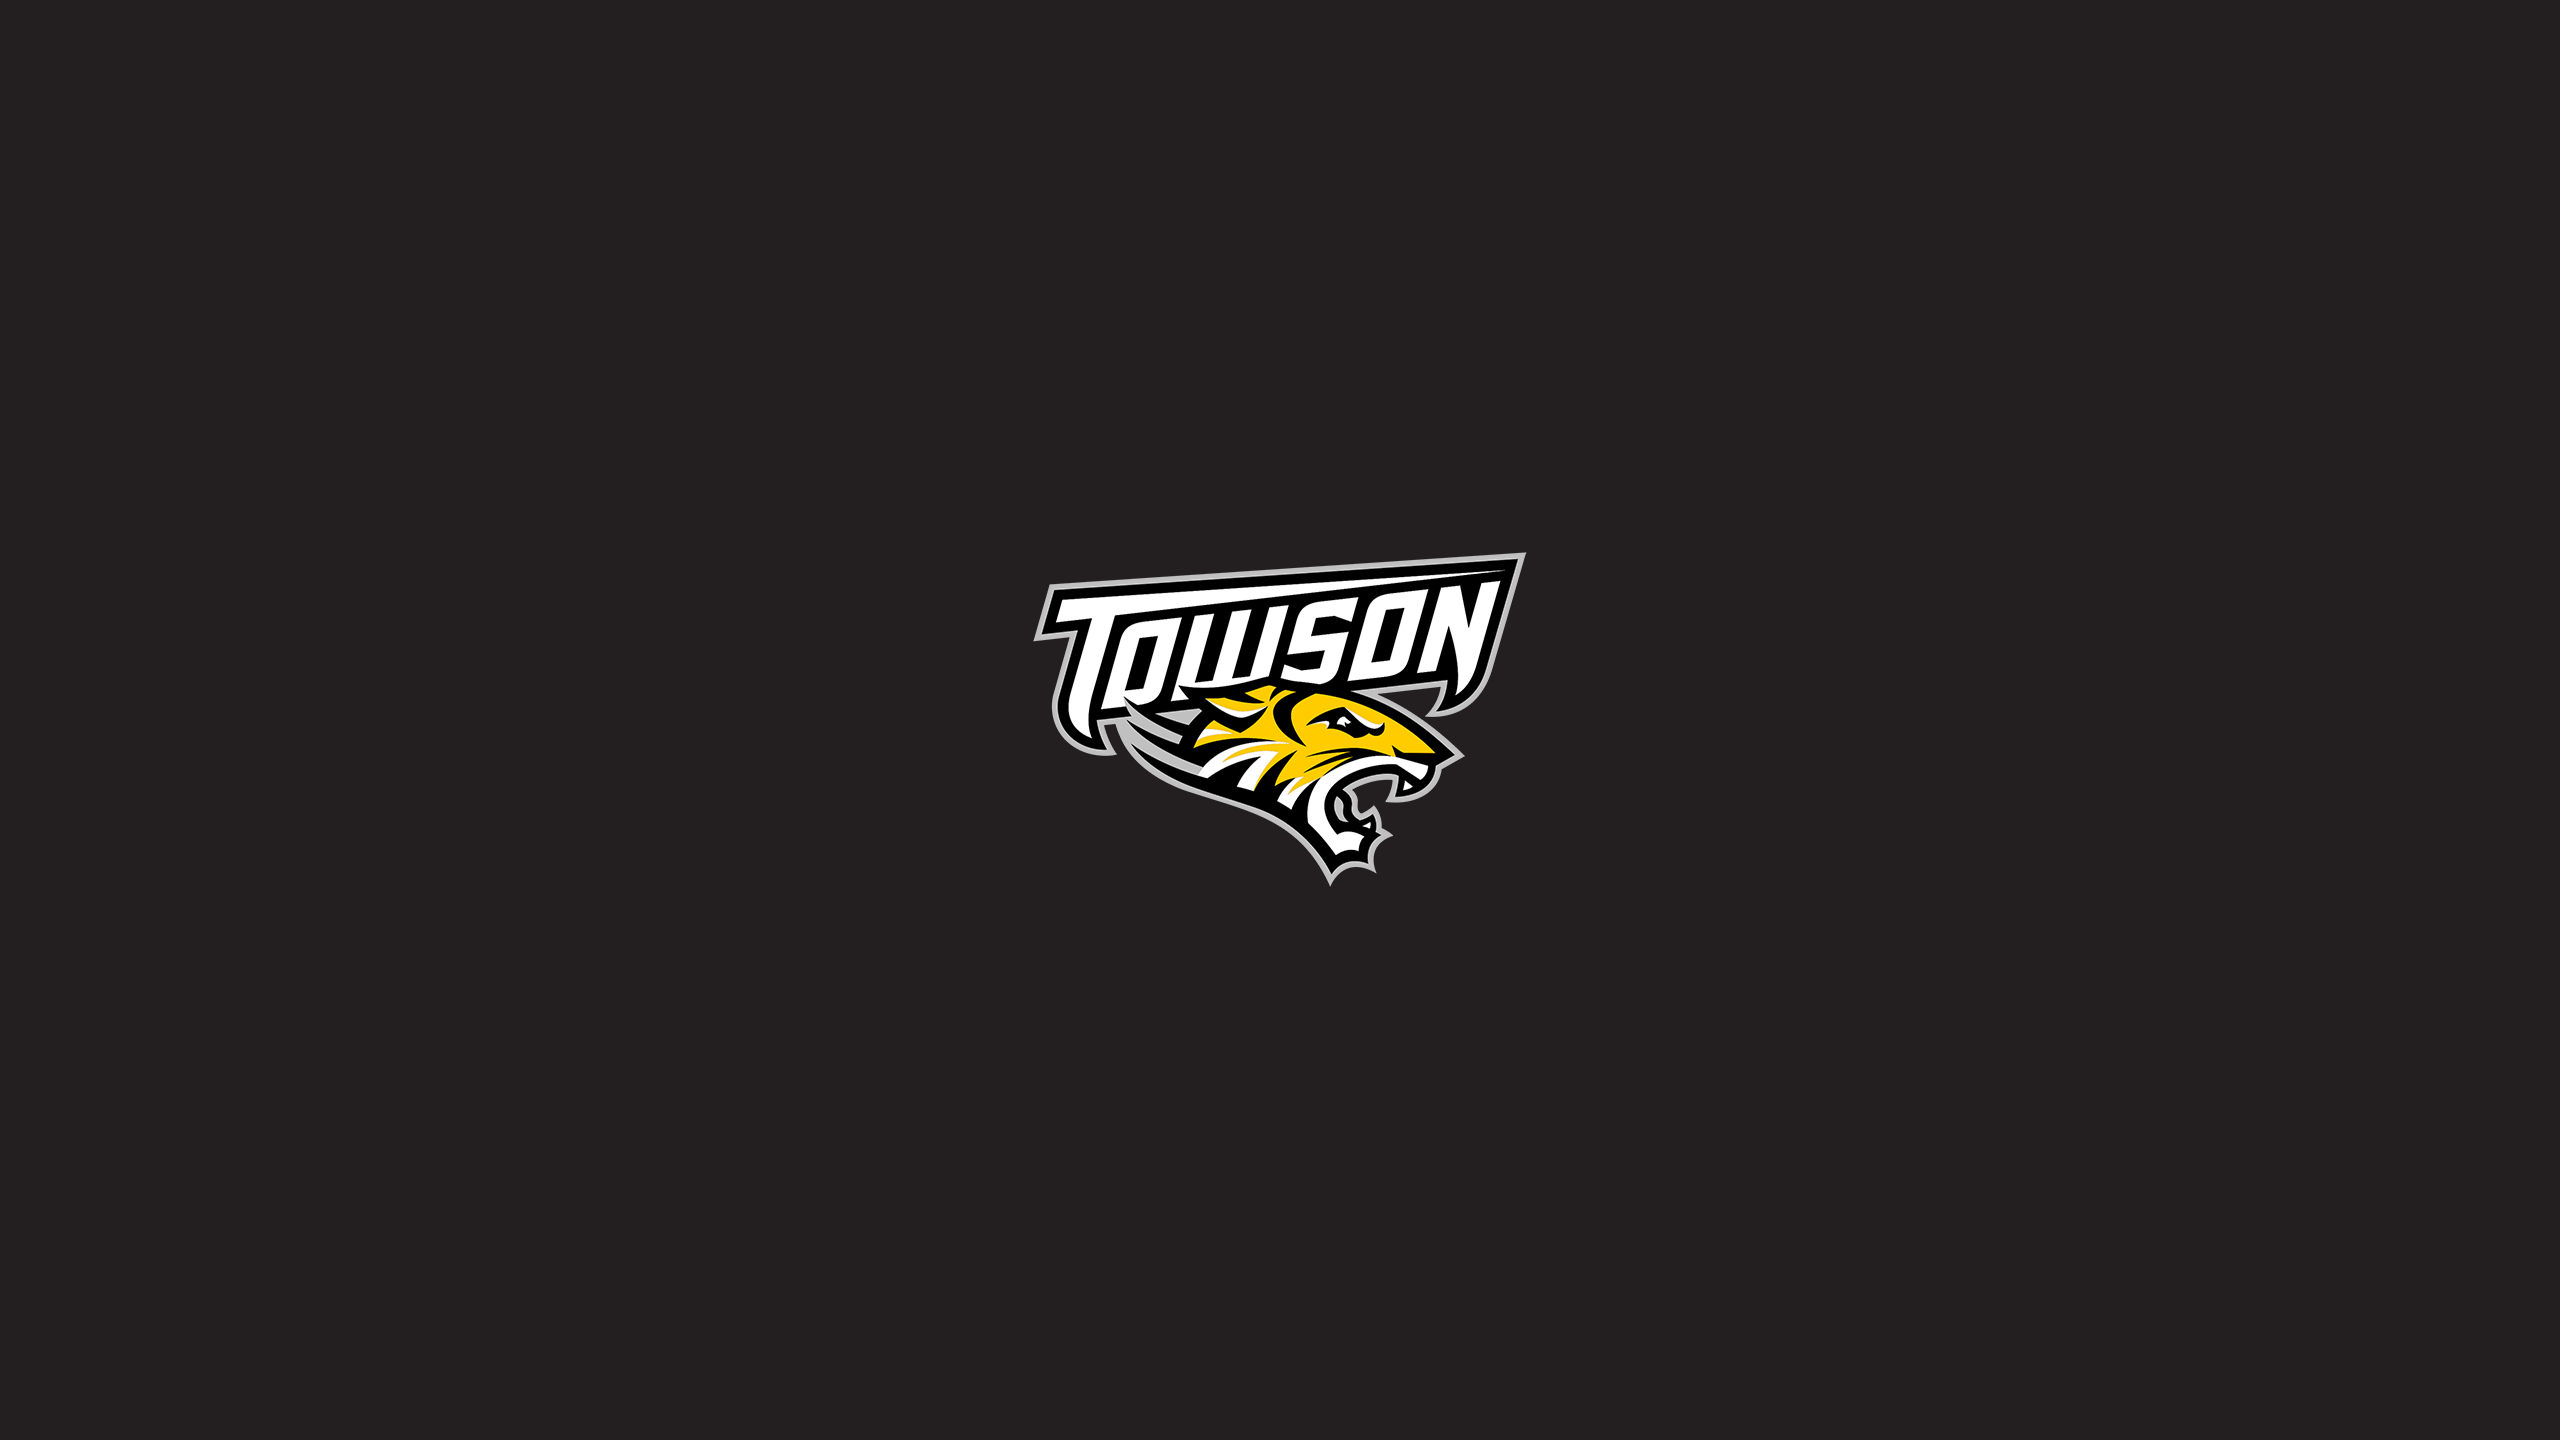 Towson University Tigers